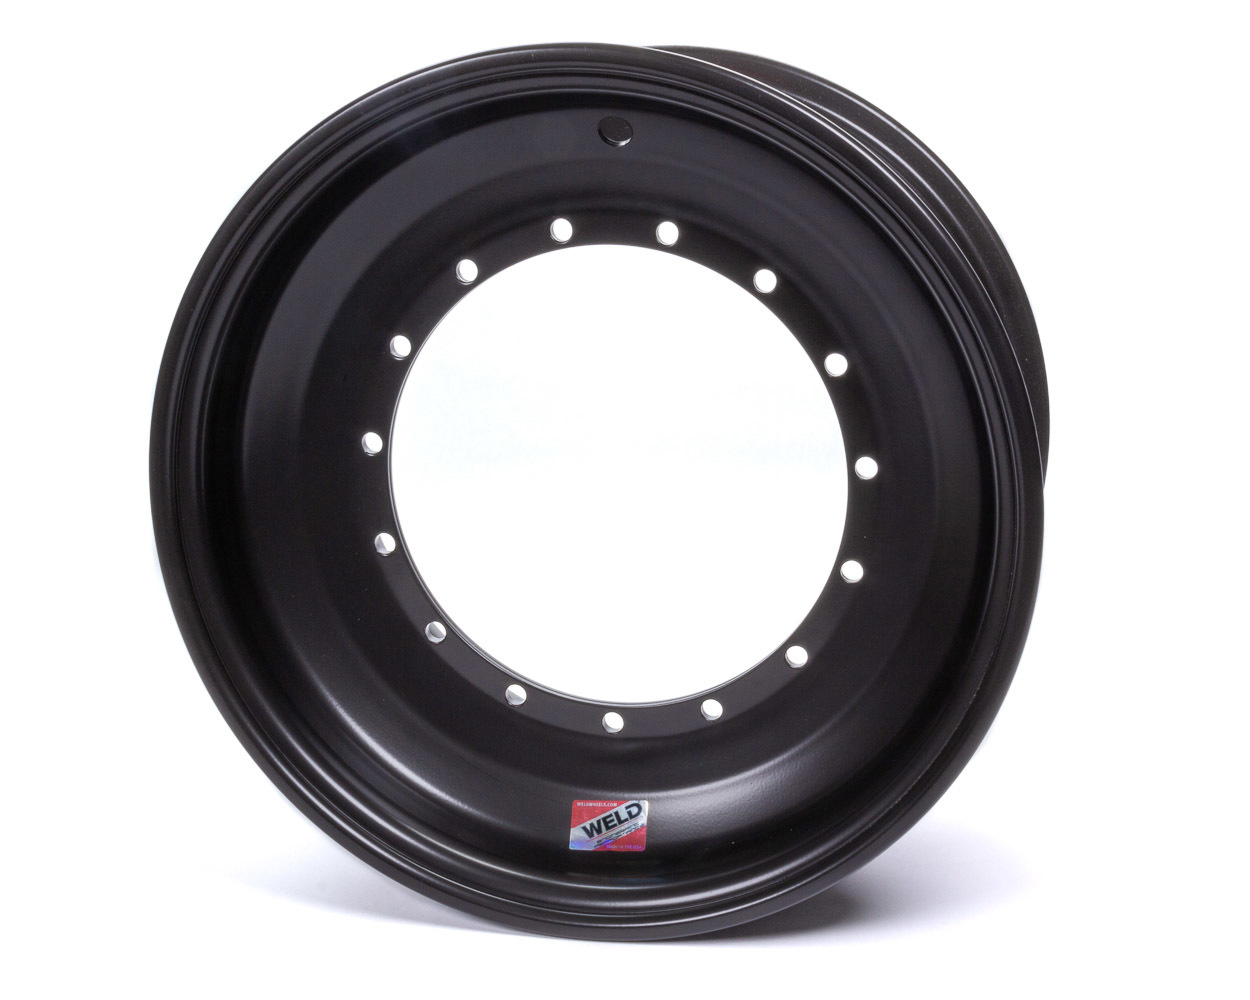 WELD RACING 15x8 3in BS Direct Mount No Cover All Black P/N - 860B-50813